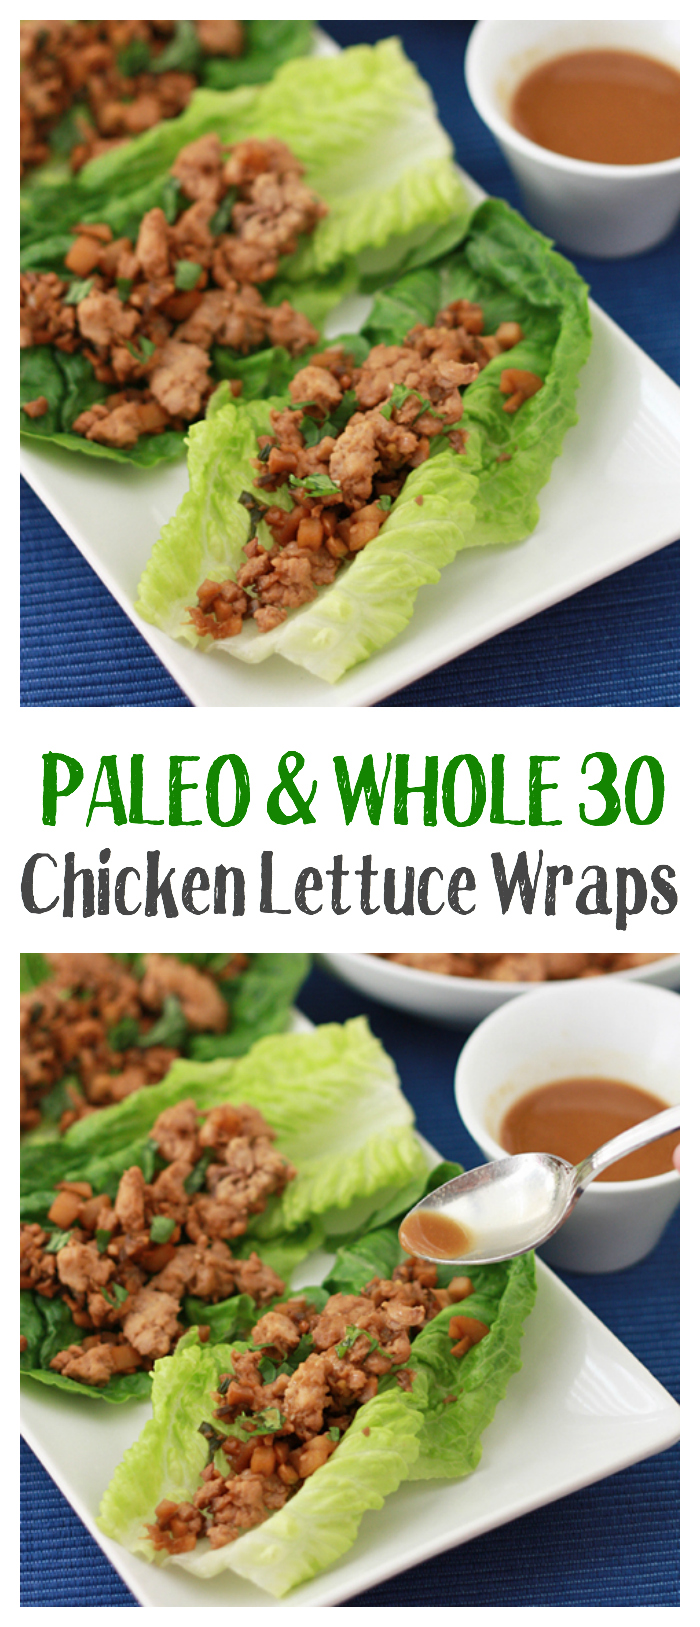 These fresh, flavorful lettuce wraps are one of our favorite healthy meals. Paleo, Whole30, and SO good!